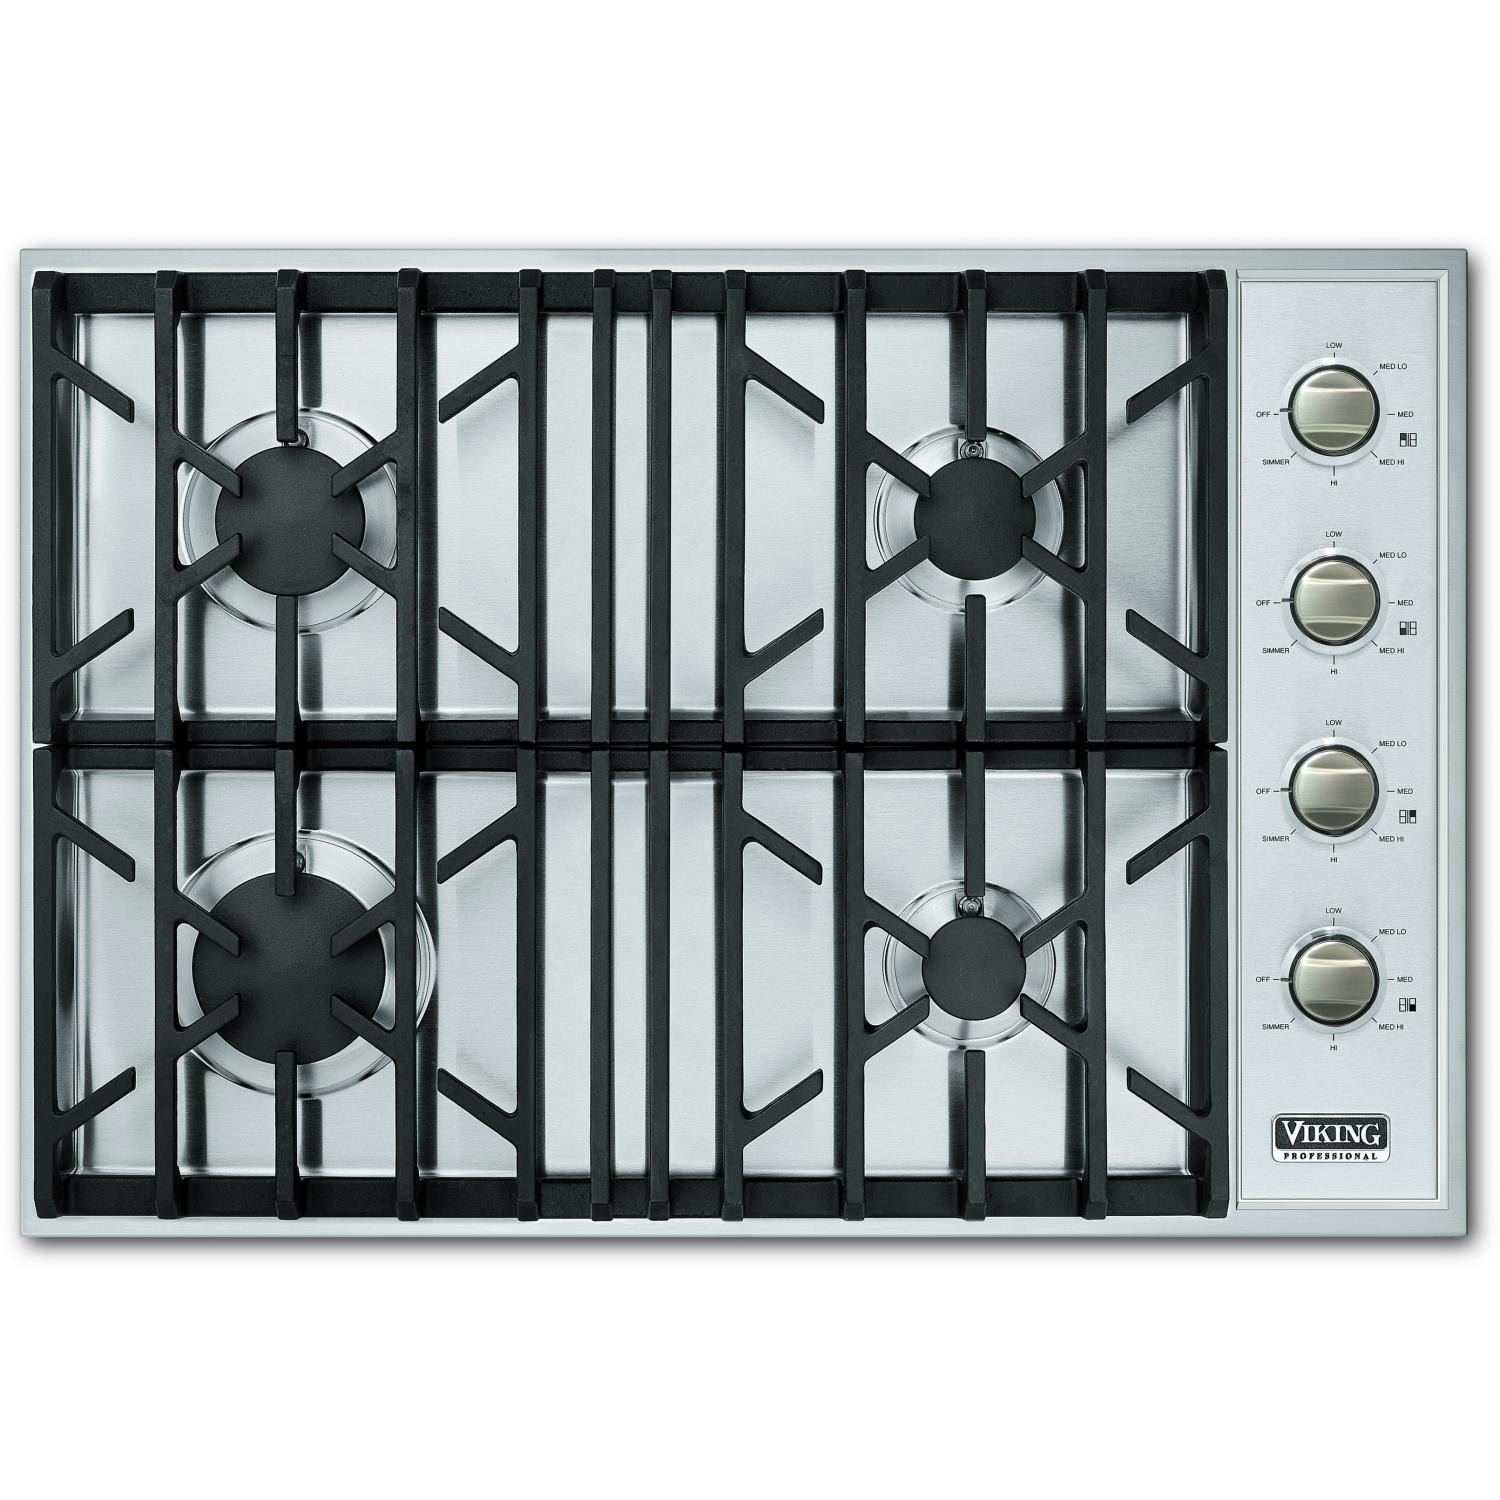 viking vgsu1044b 30inch pro series gas cooktop stainless steel